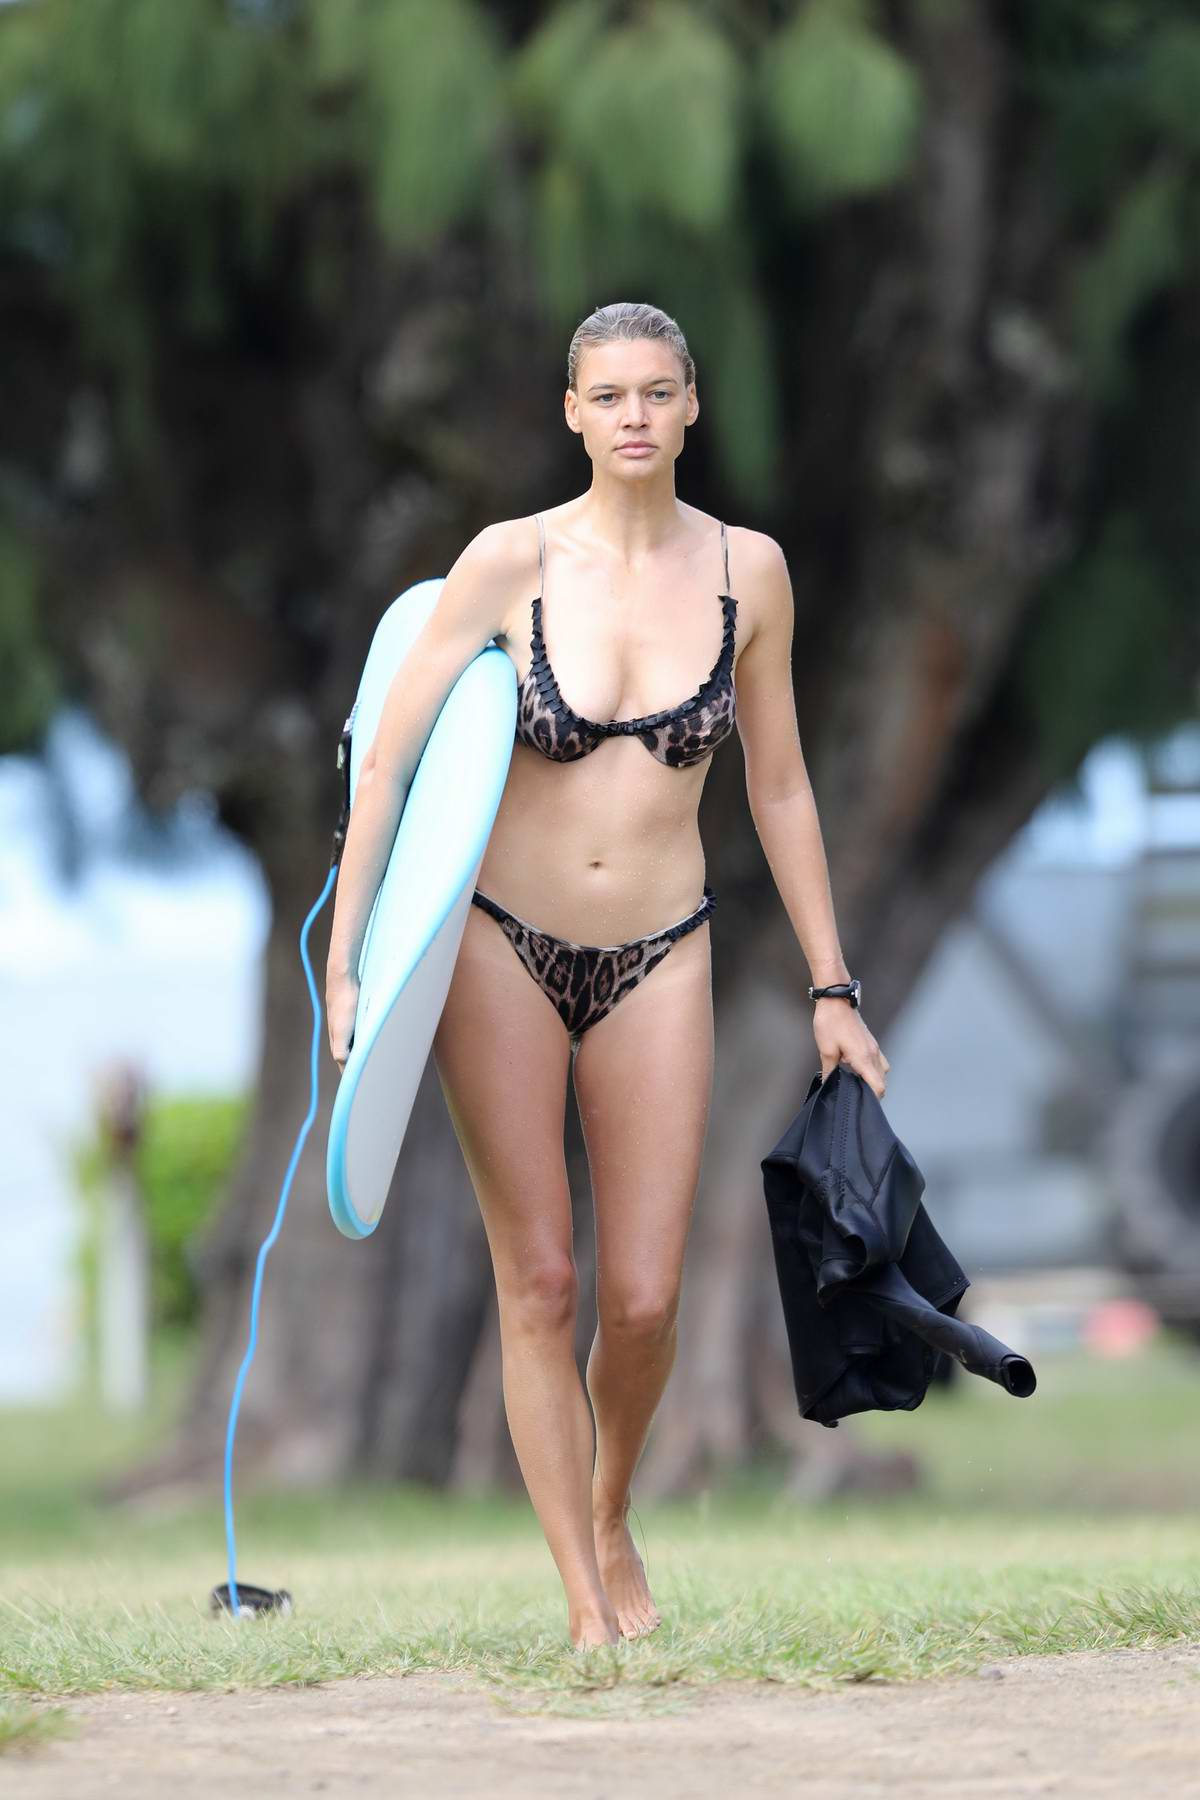 Kelly Rohrbach hits the beach in an animal-print bikini as she enjoys a day of surfing in Hawaii